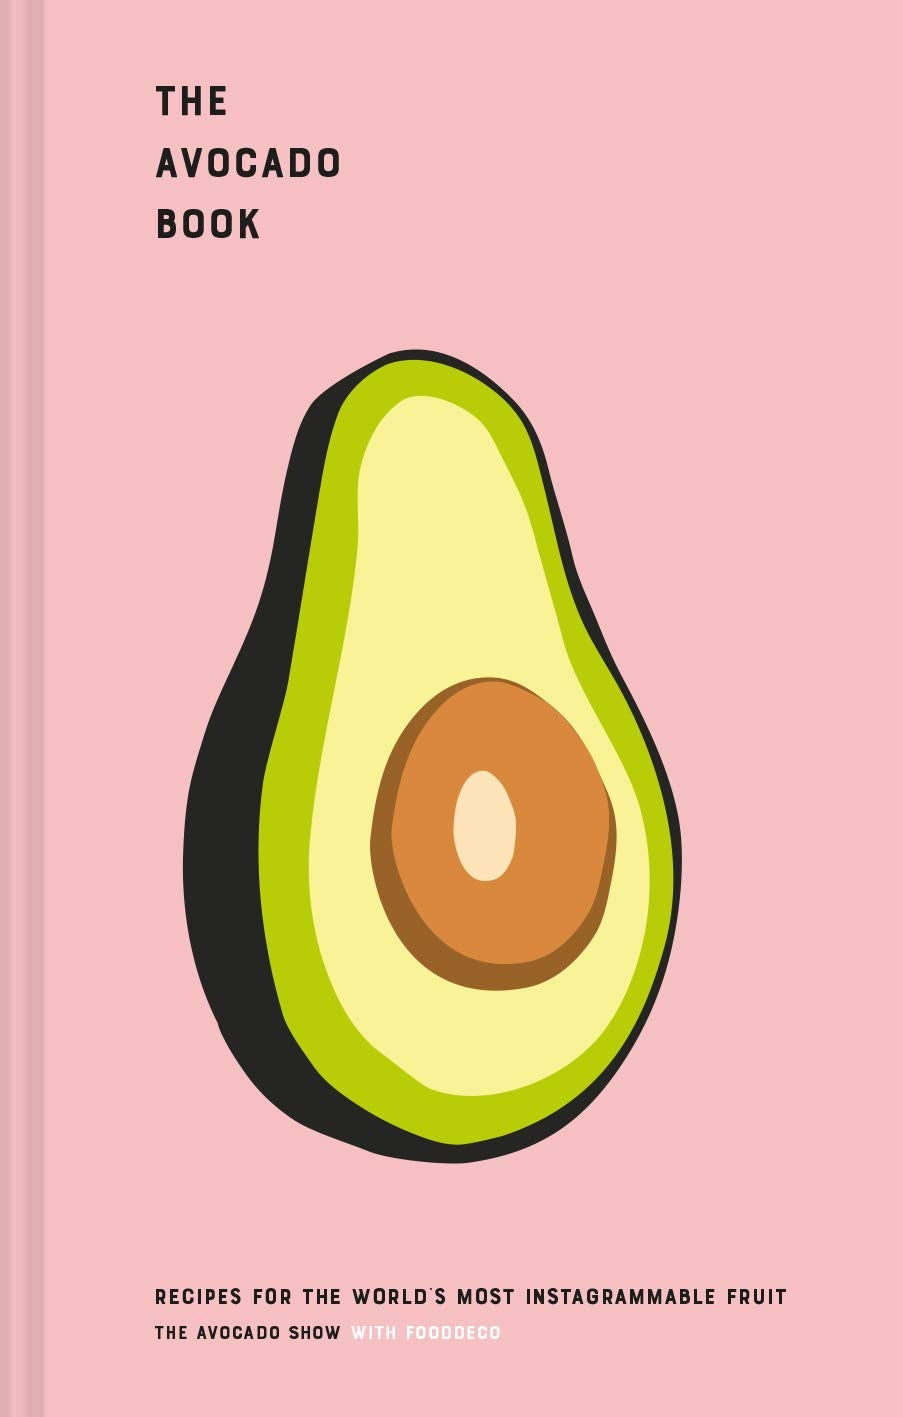 Image of The Avocado Book: Recipes for the World's Most Instagrammable Fruit